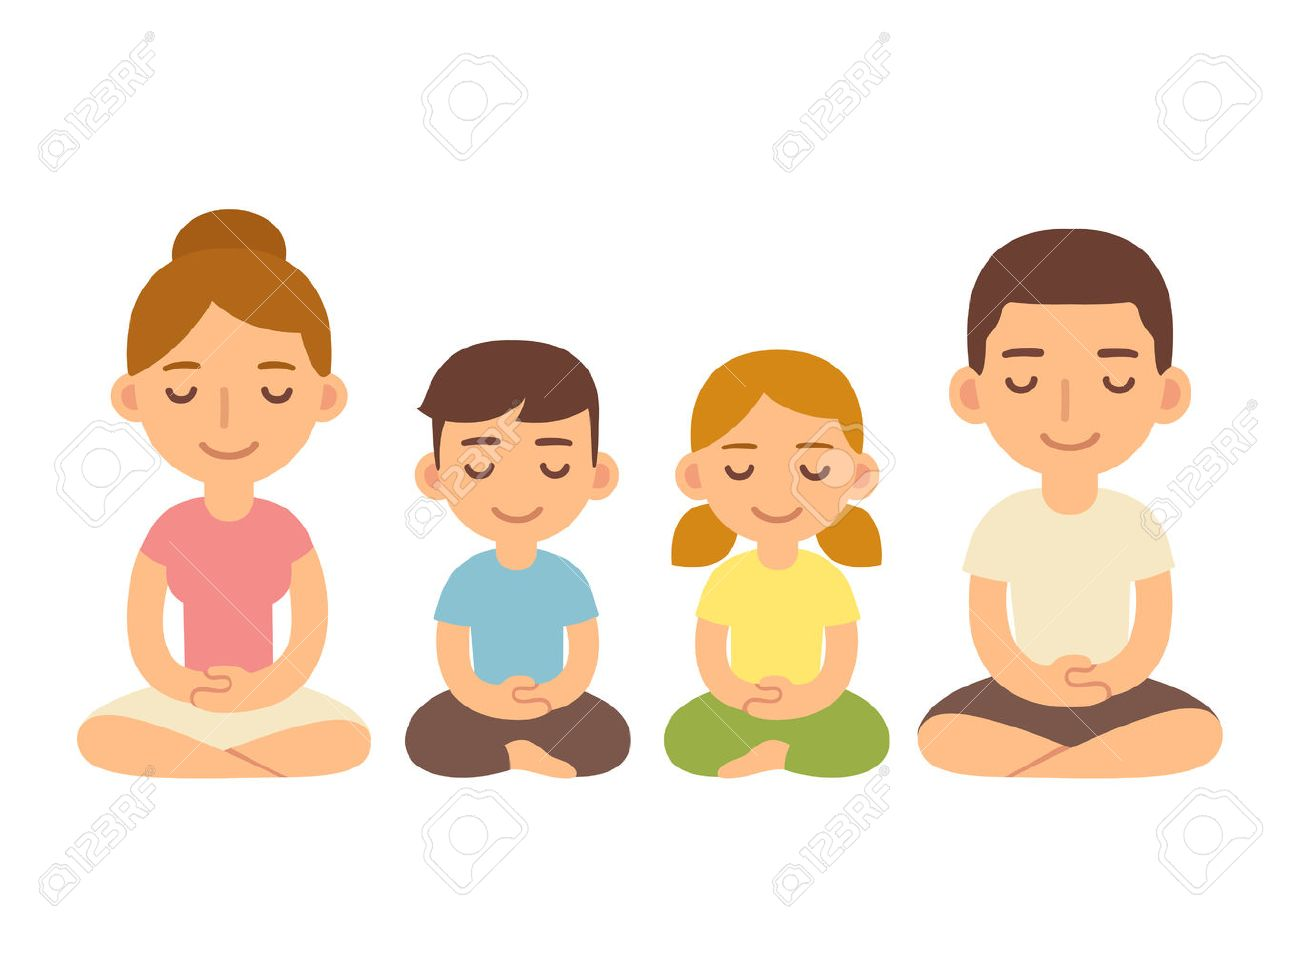 Family meditating sitting in lotus pose, young adults and children. Cute cartoon meditation and mindfullness lifestyle illustration. - 71507625